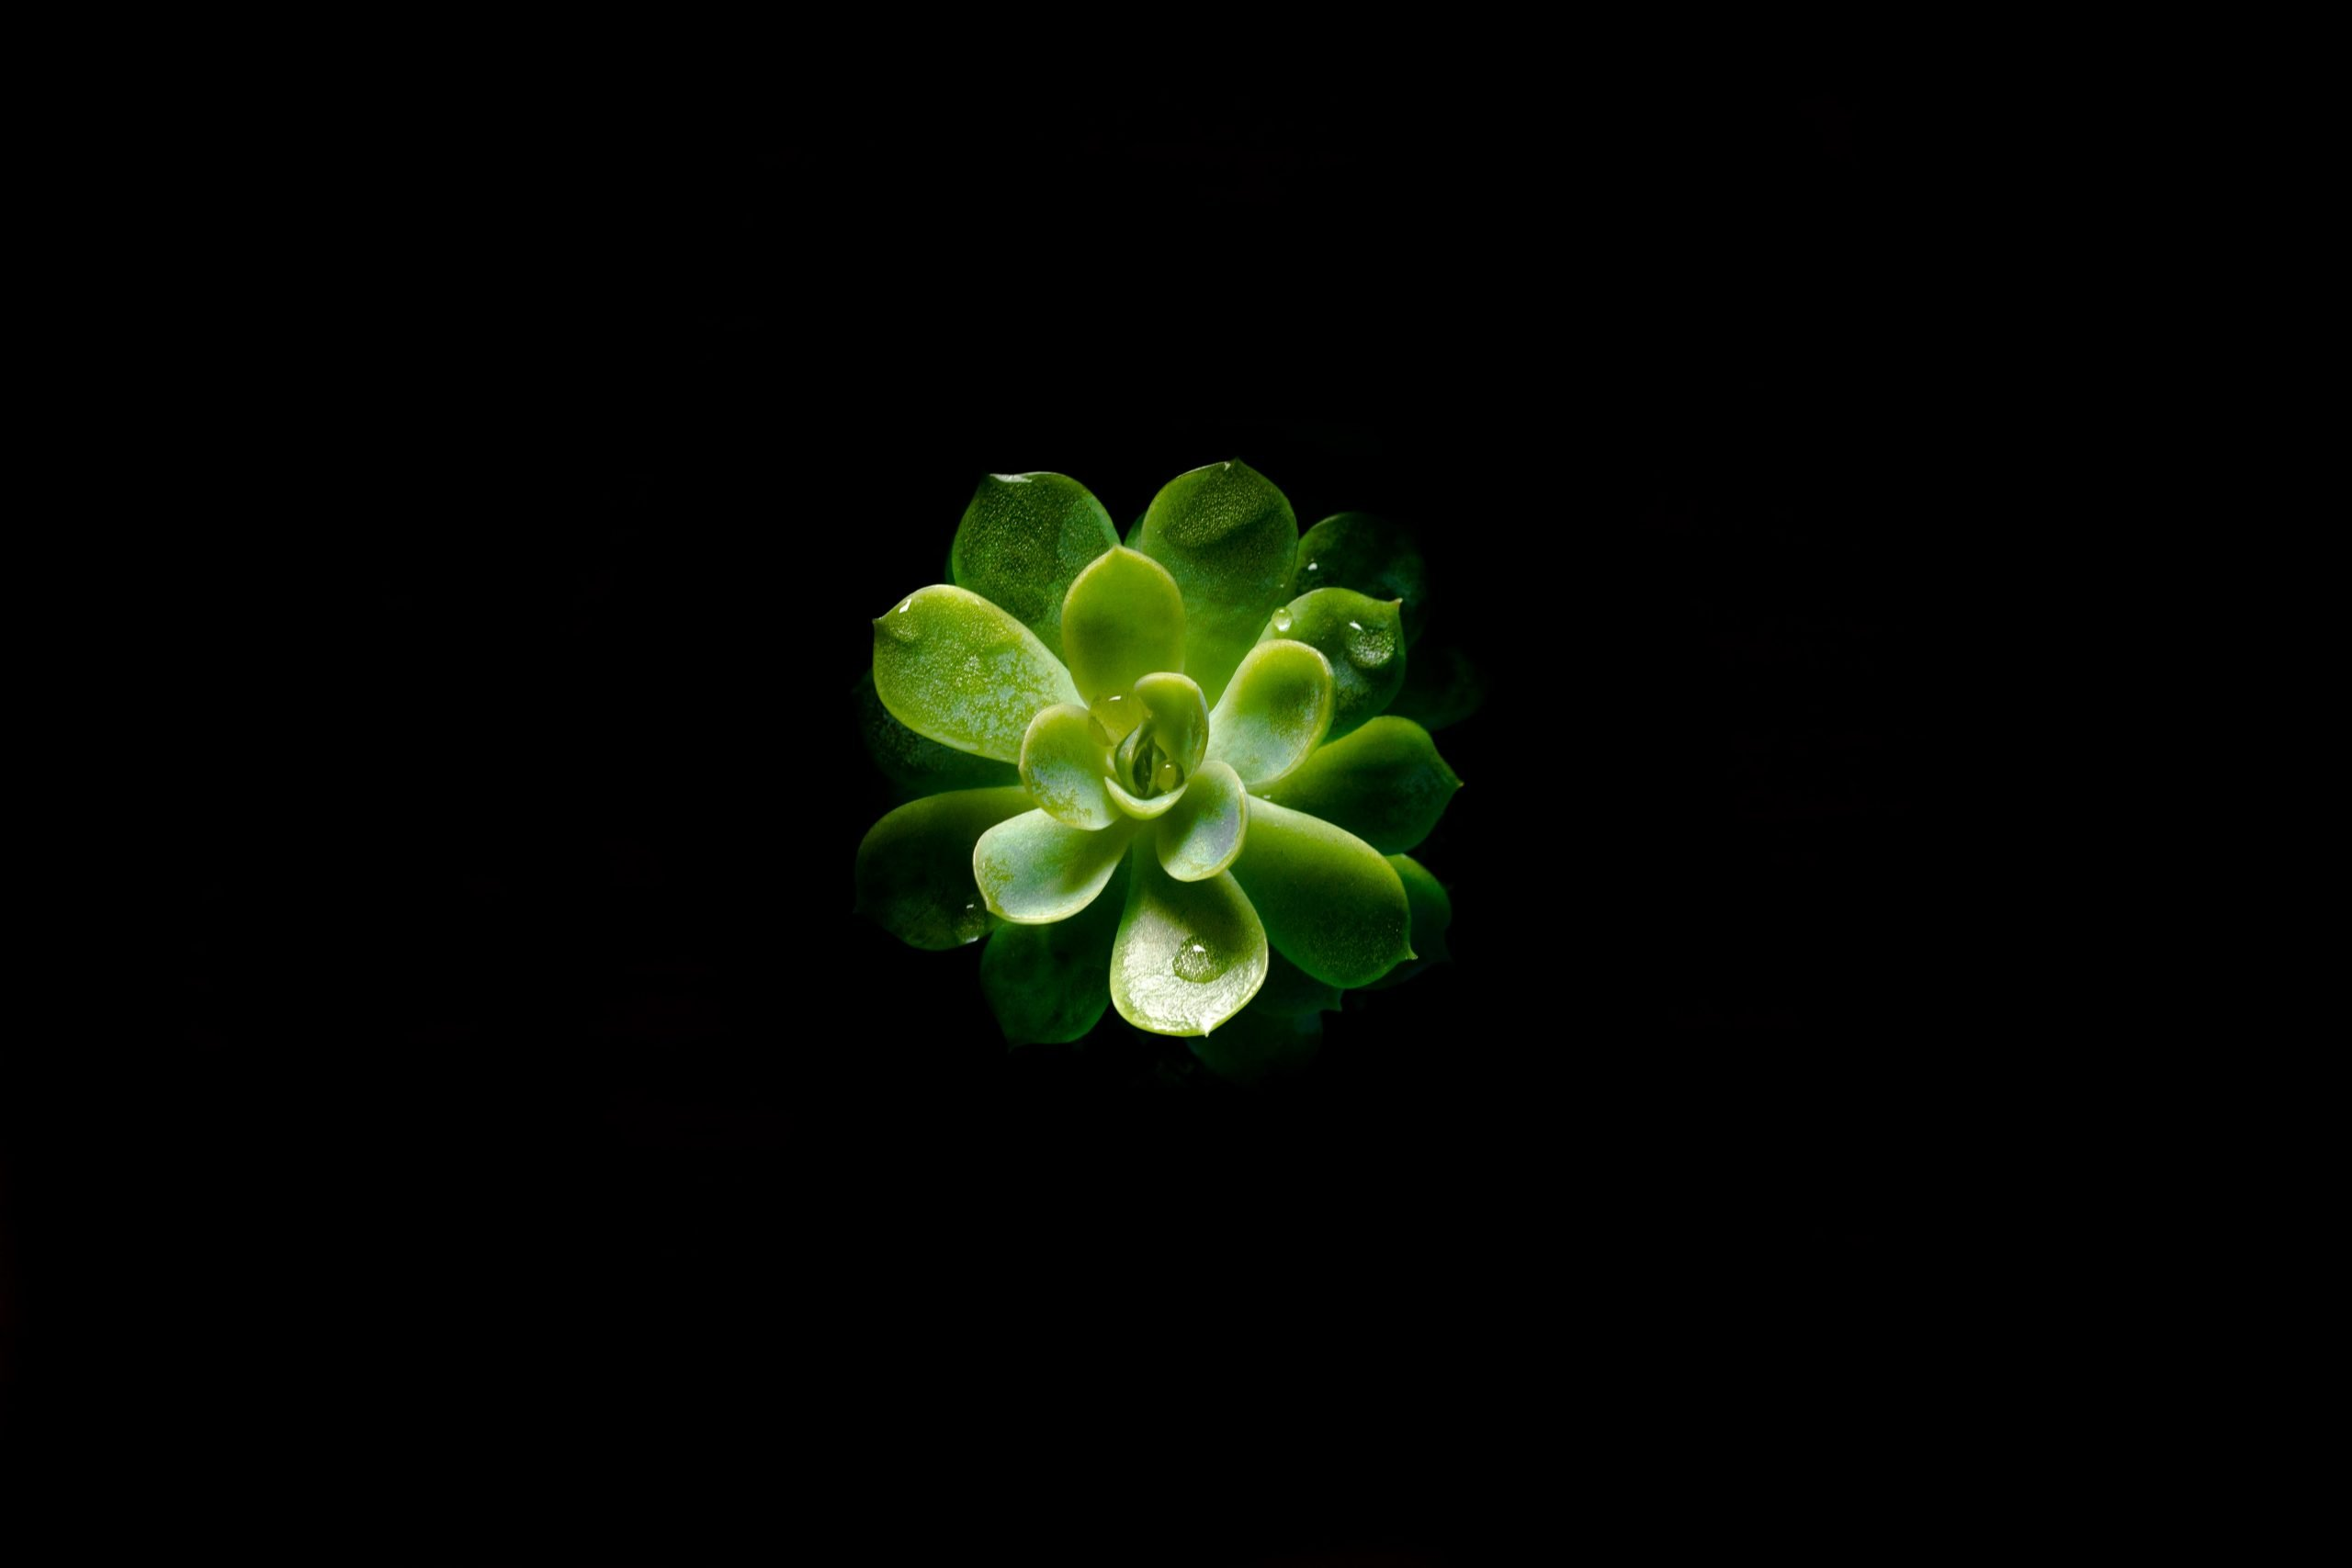 Plant Black Wallpaper Wallpaper For You Hd Wallpaper For Desktop Mobile